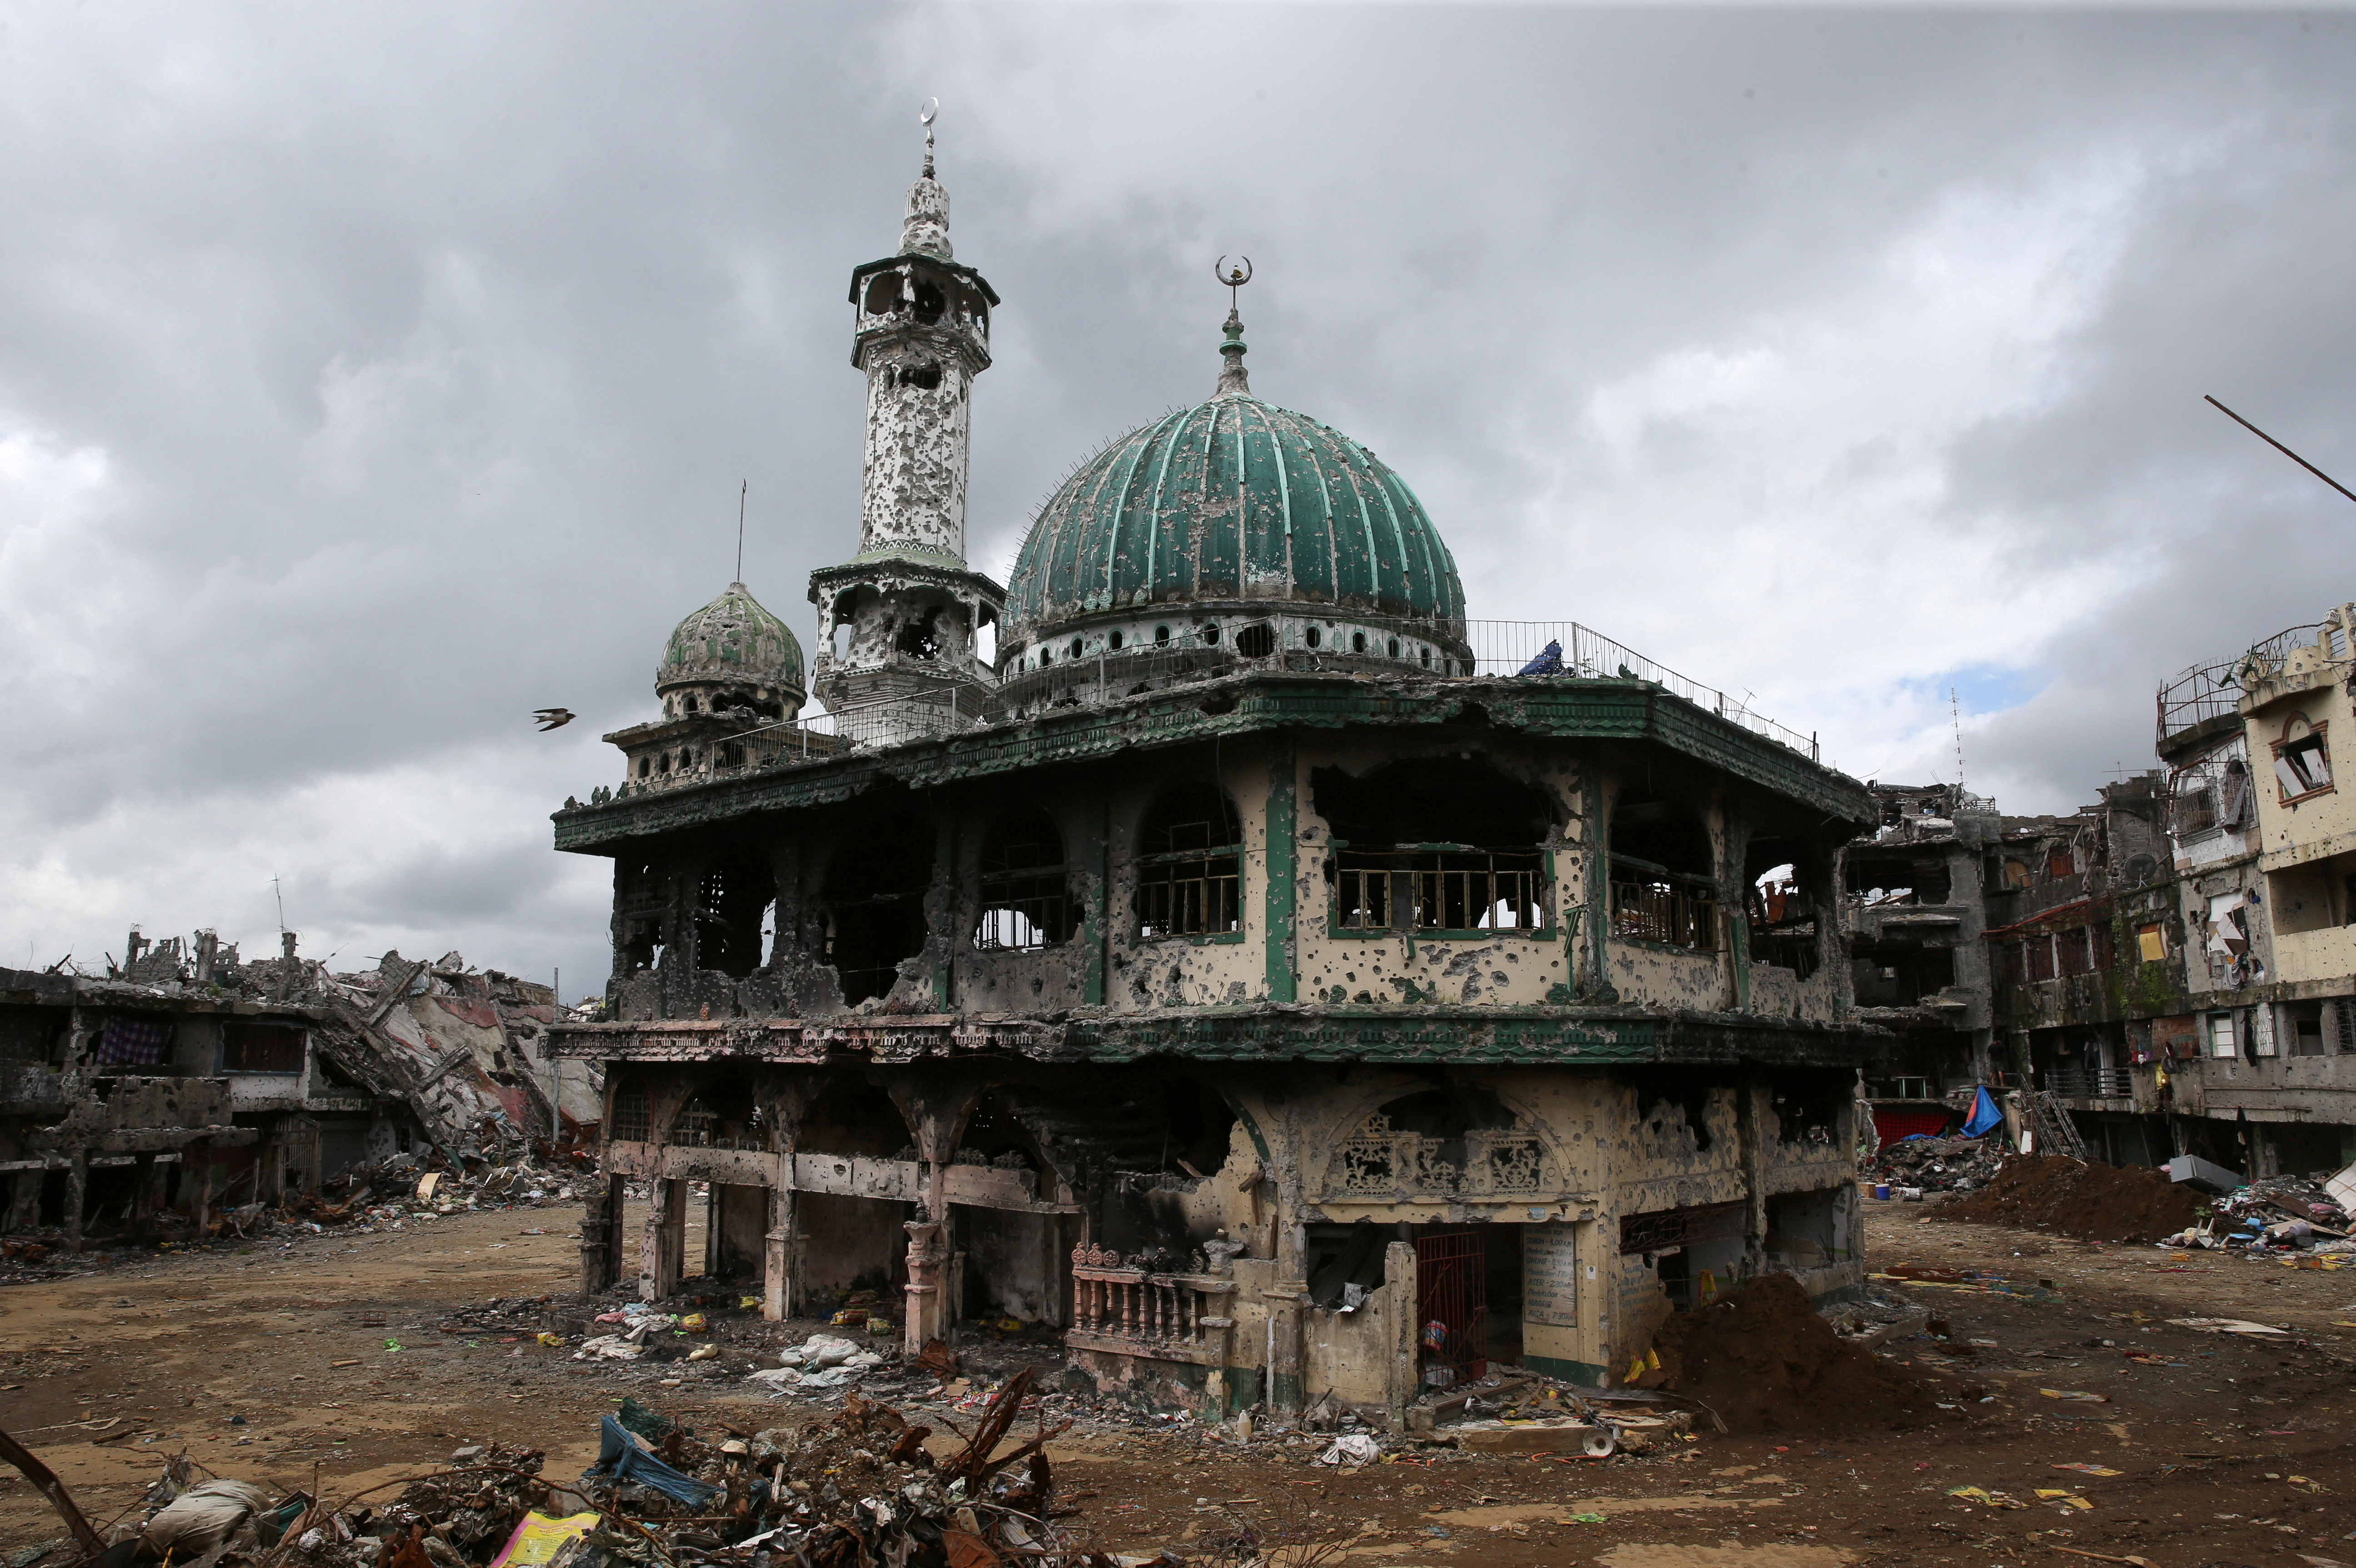 A damaged mosque is seen in Marawi city, Philippines, October 25, 2017.